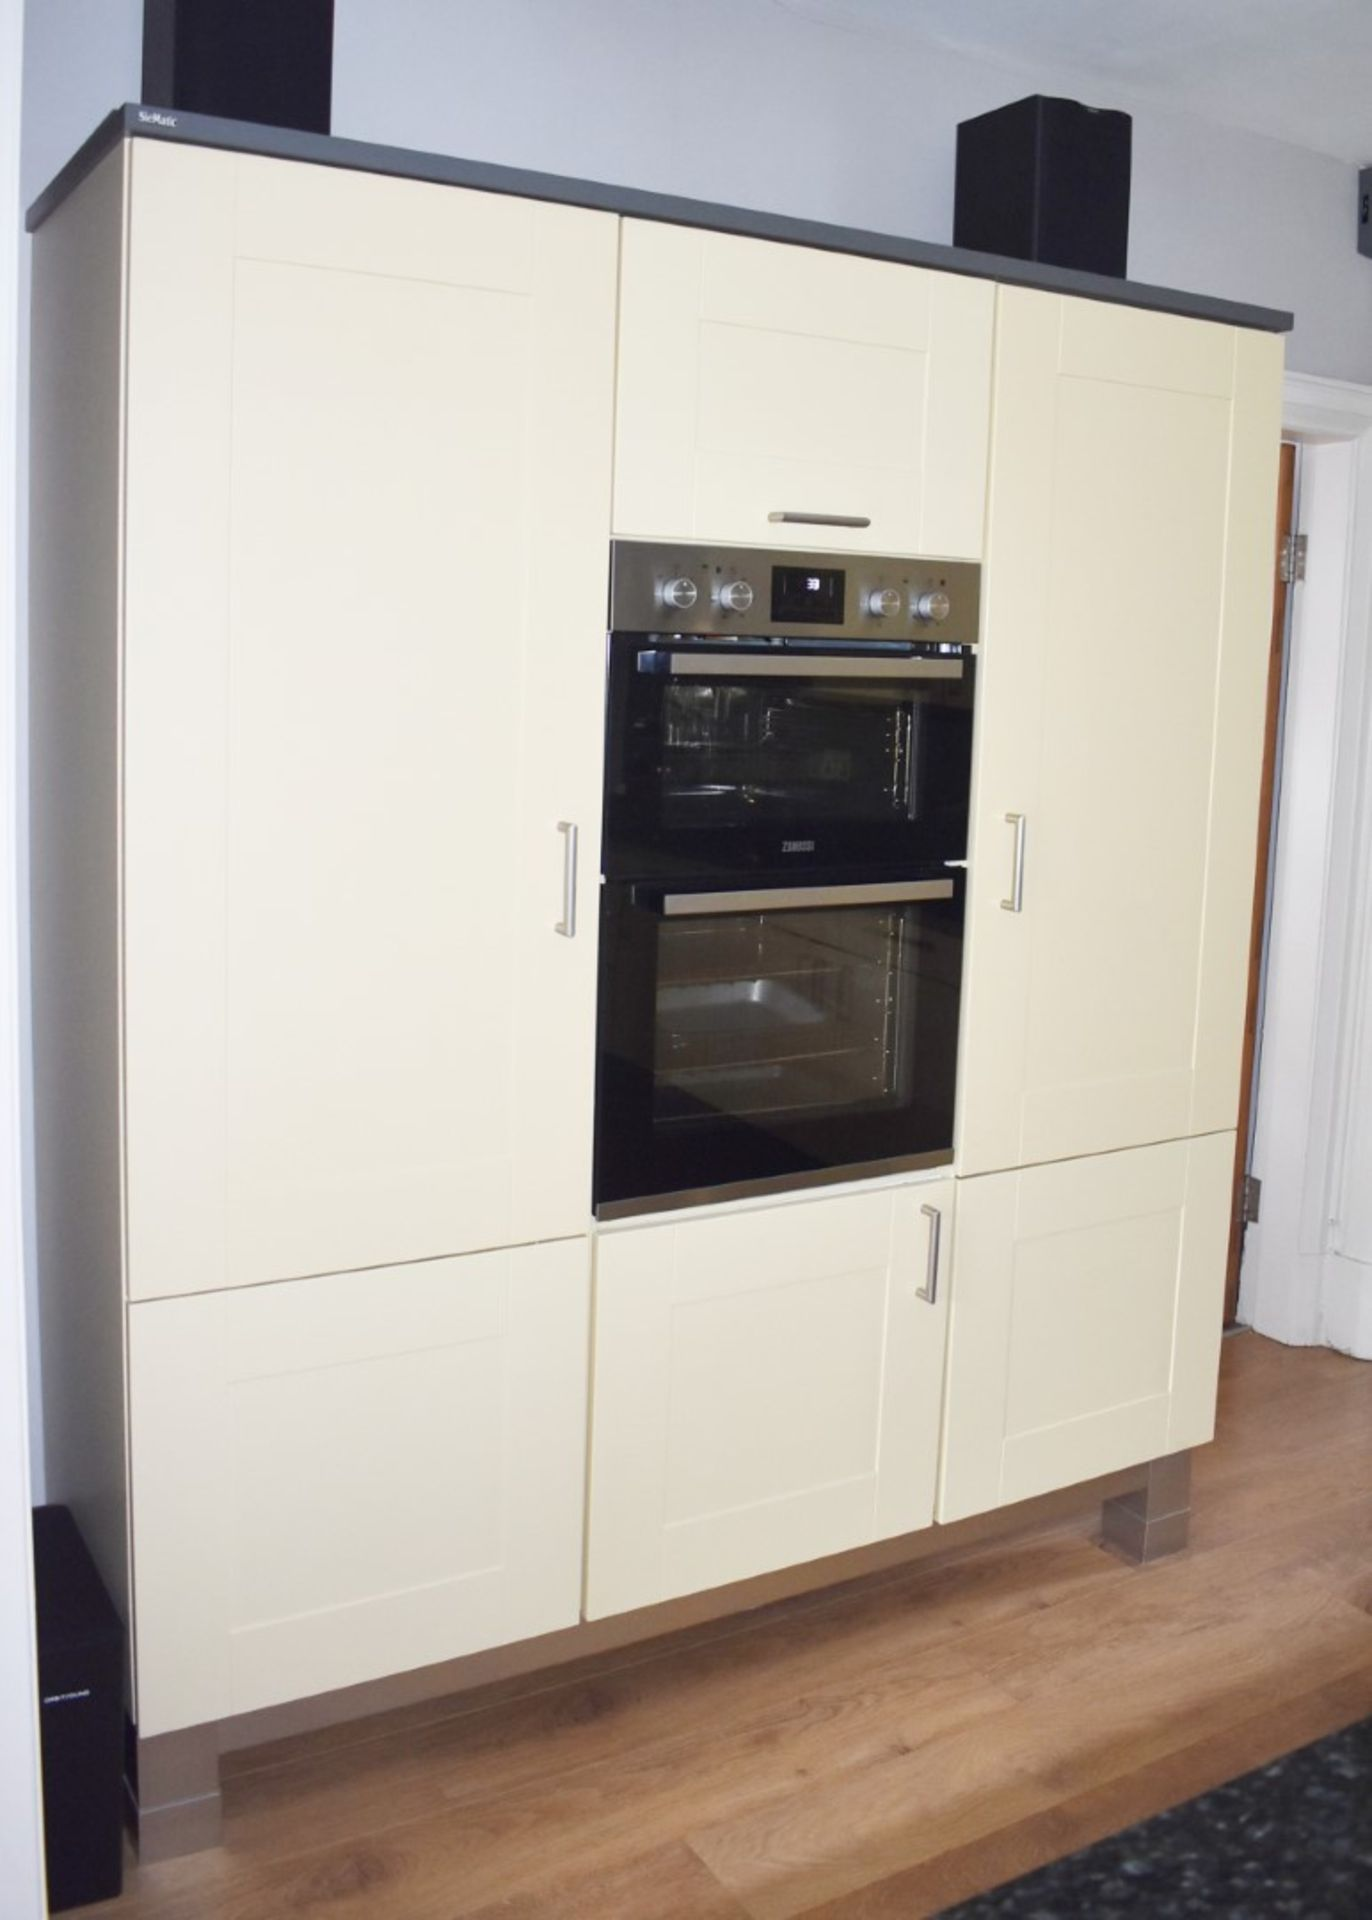 1 x SieMatic Contemporary Fitted Kitchen With Appliances - Features Shaker Style Doors, Central - Image 25 of 96